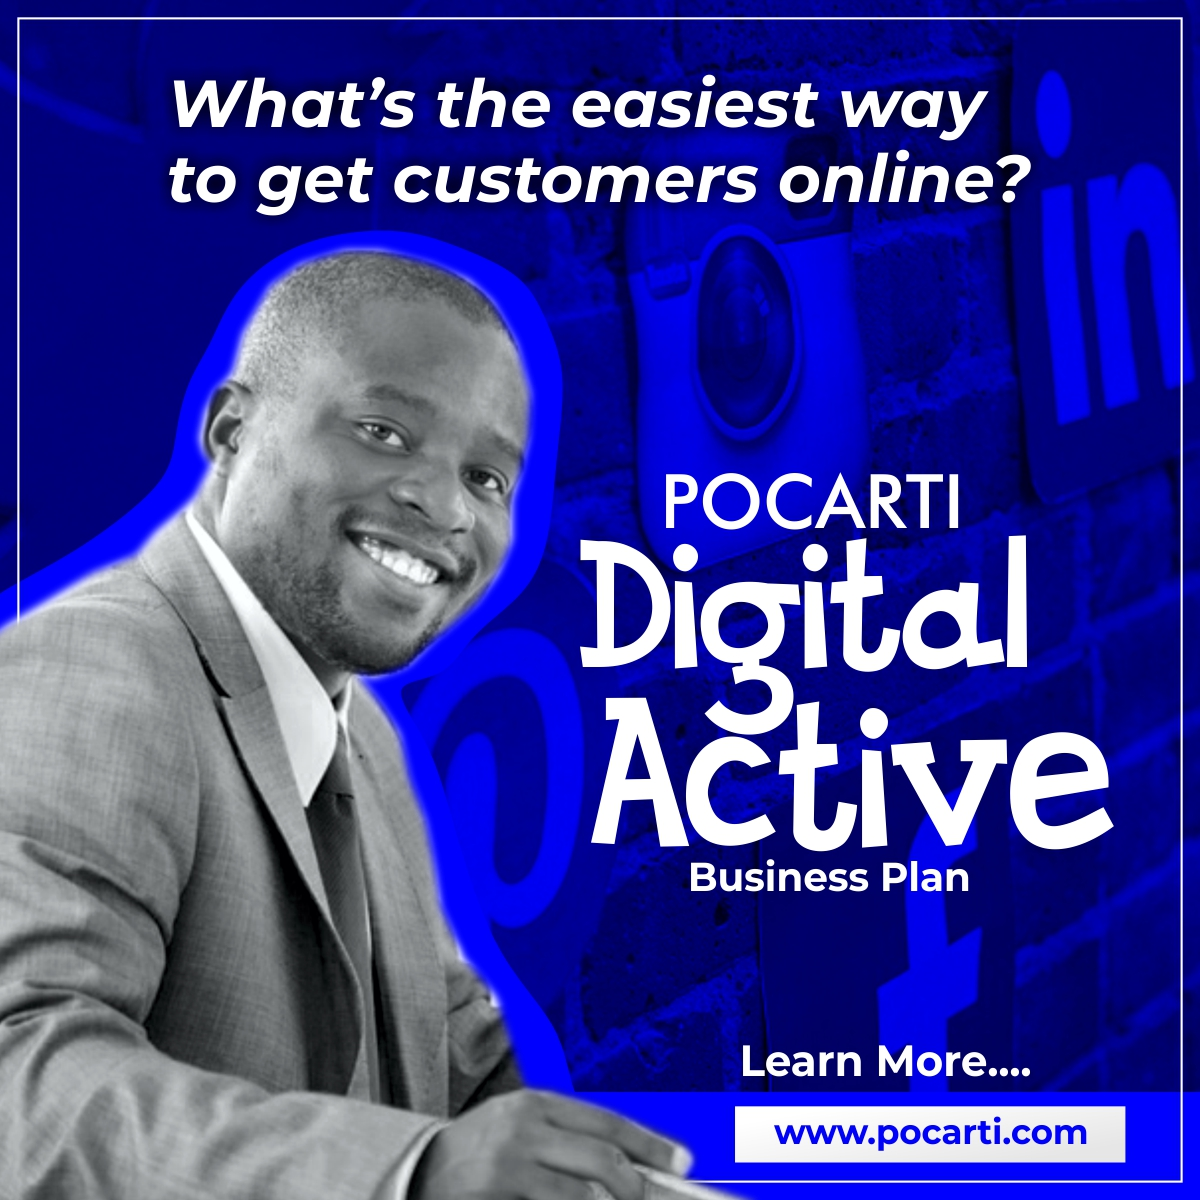 pocarti digital active business plan